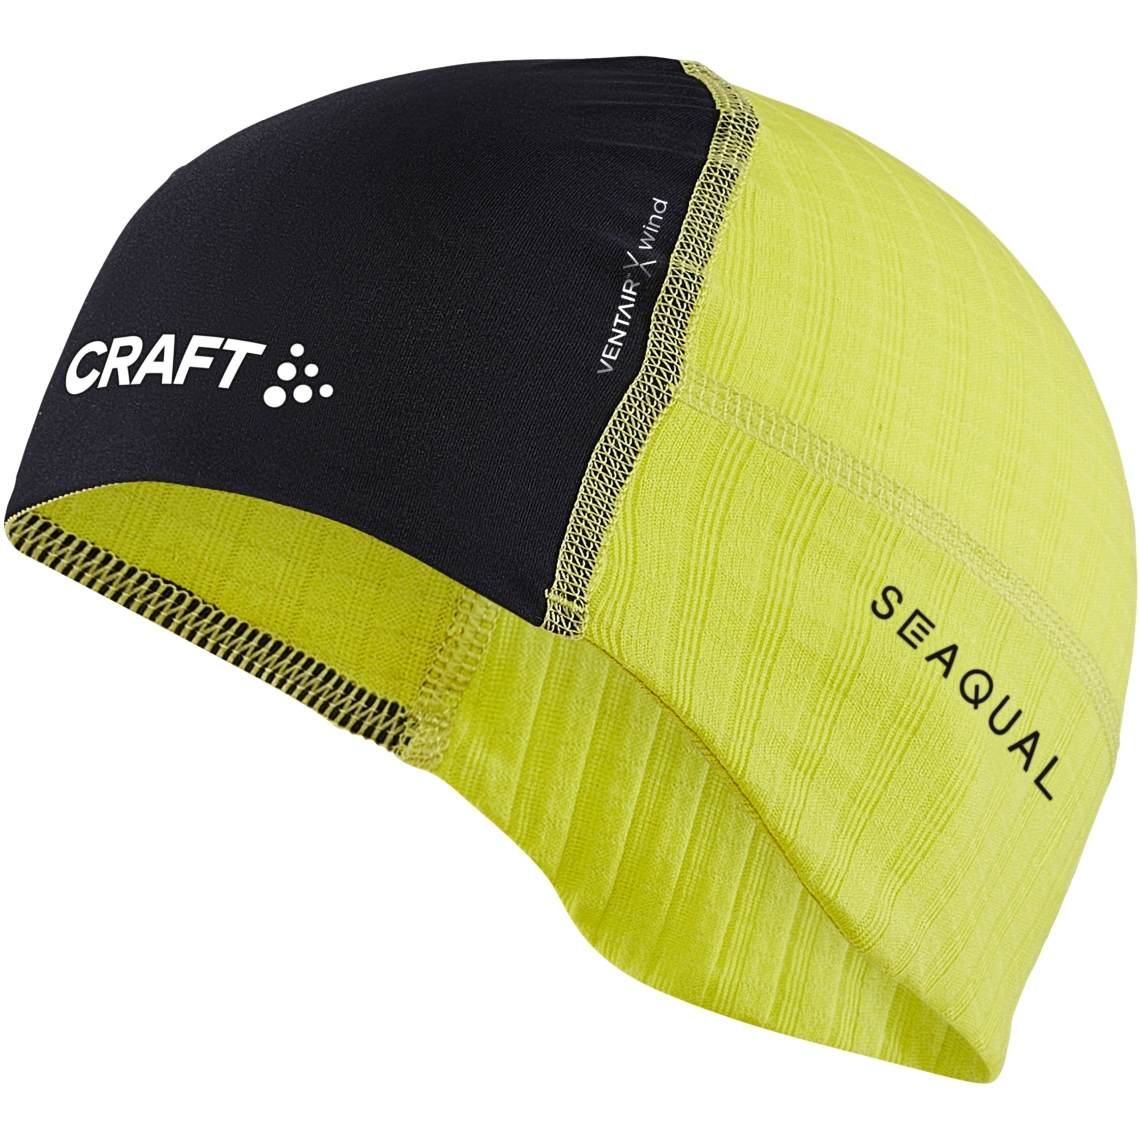 Picture of CRAFT Active Extreme X Hat 1909695 - 503985 N LIGHT/GRANITE